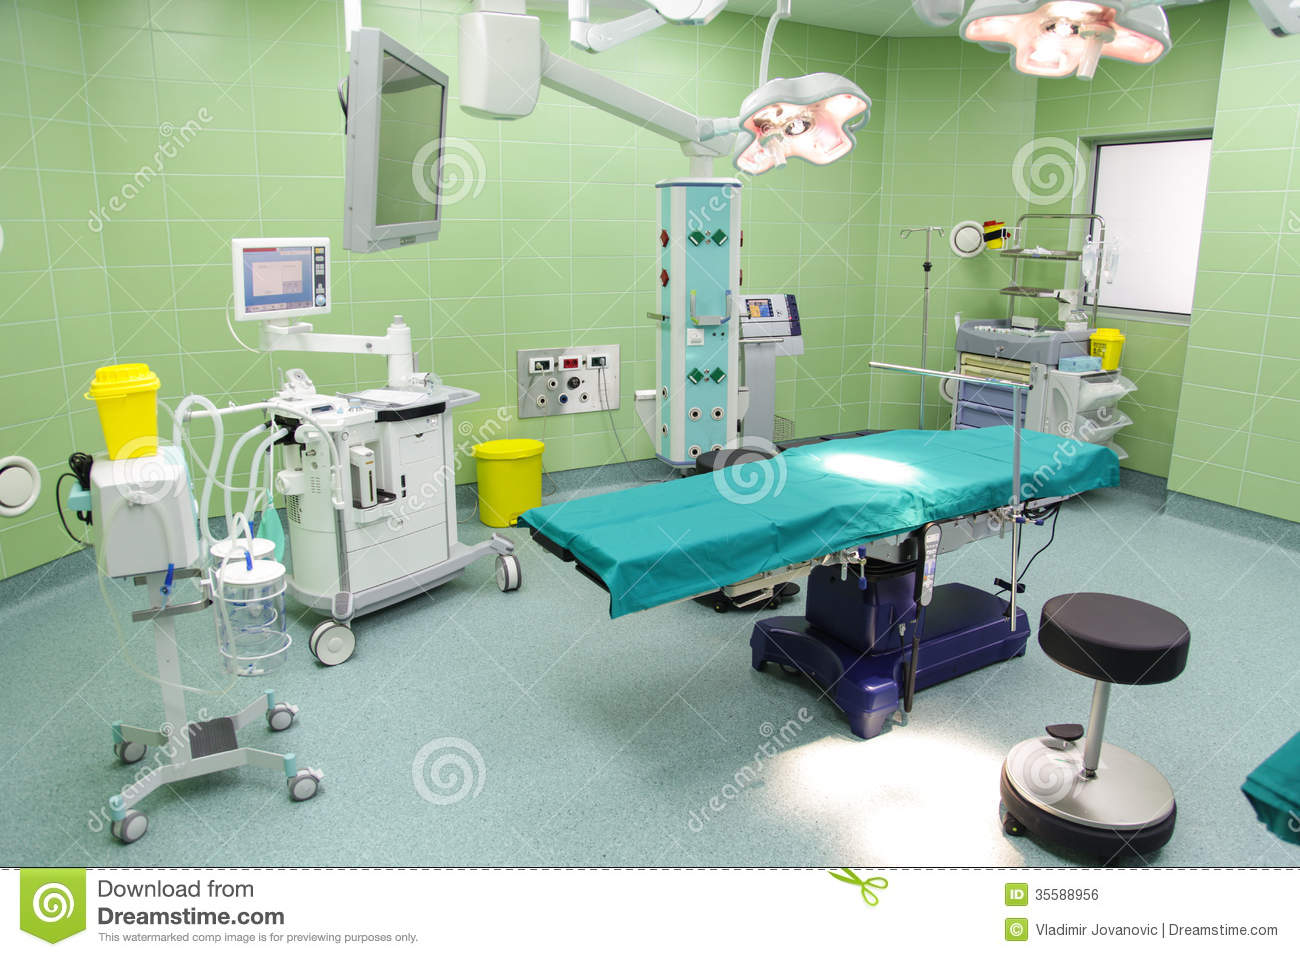 Hospital operating room - Emergency Empty Hospital Modern Operating Room